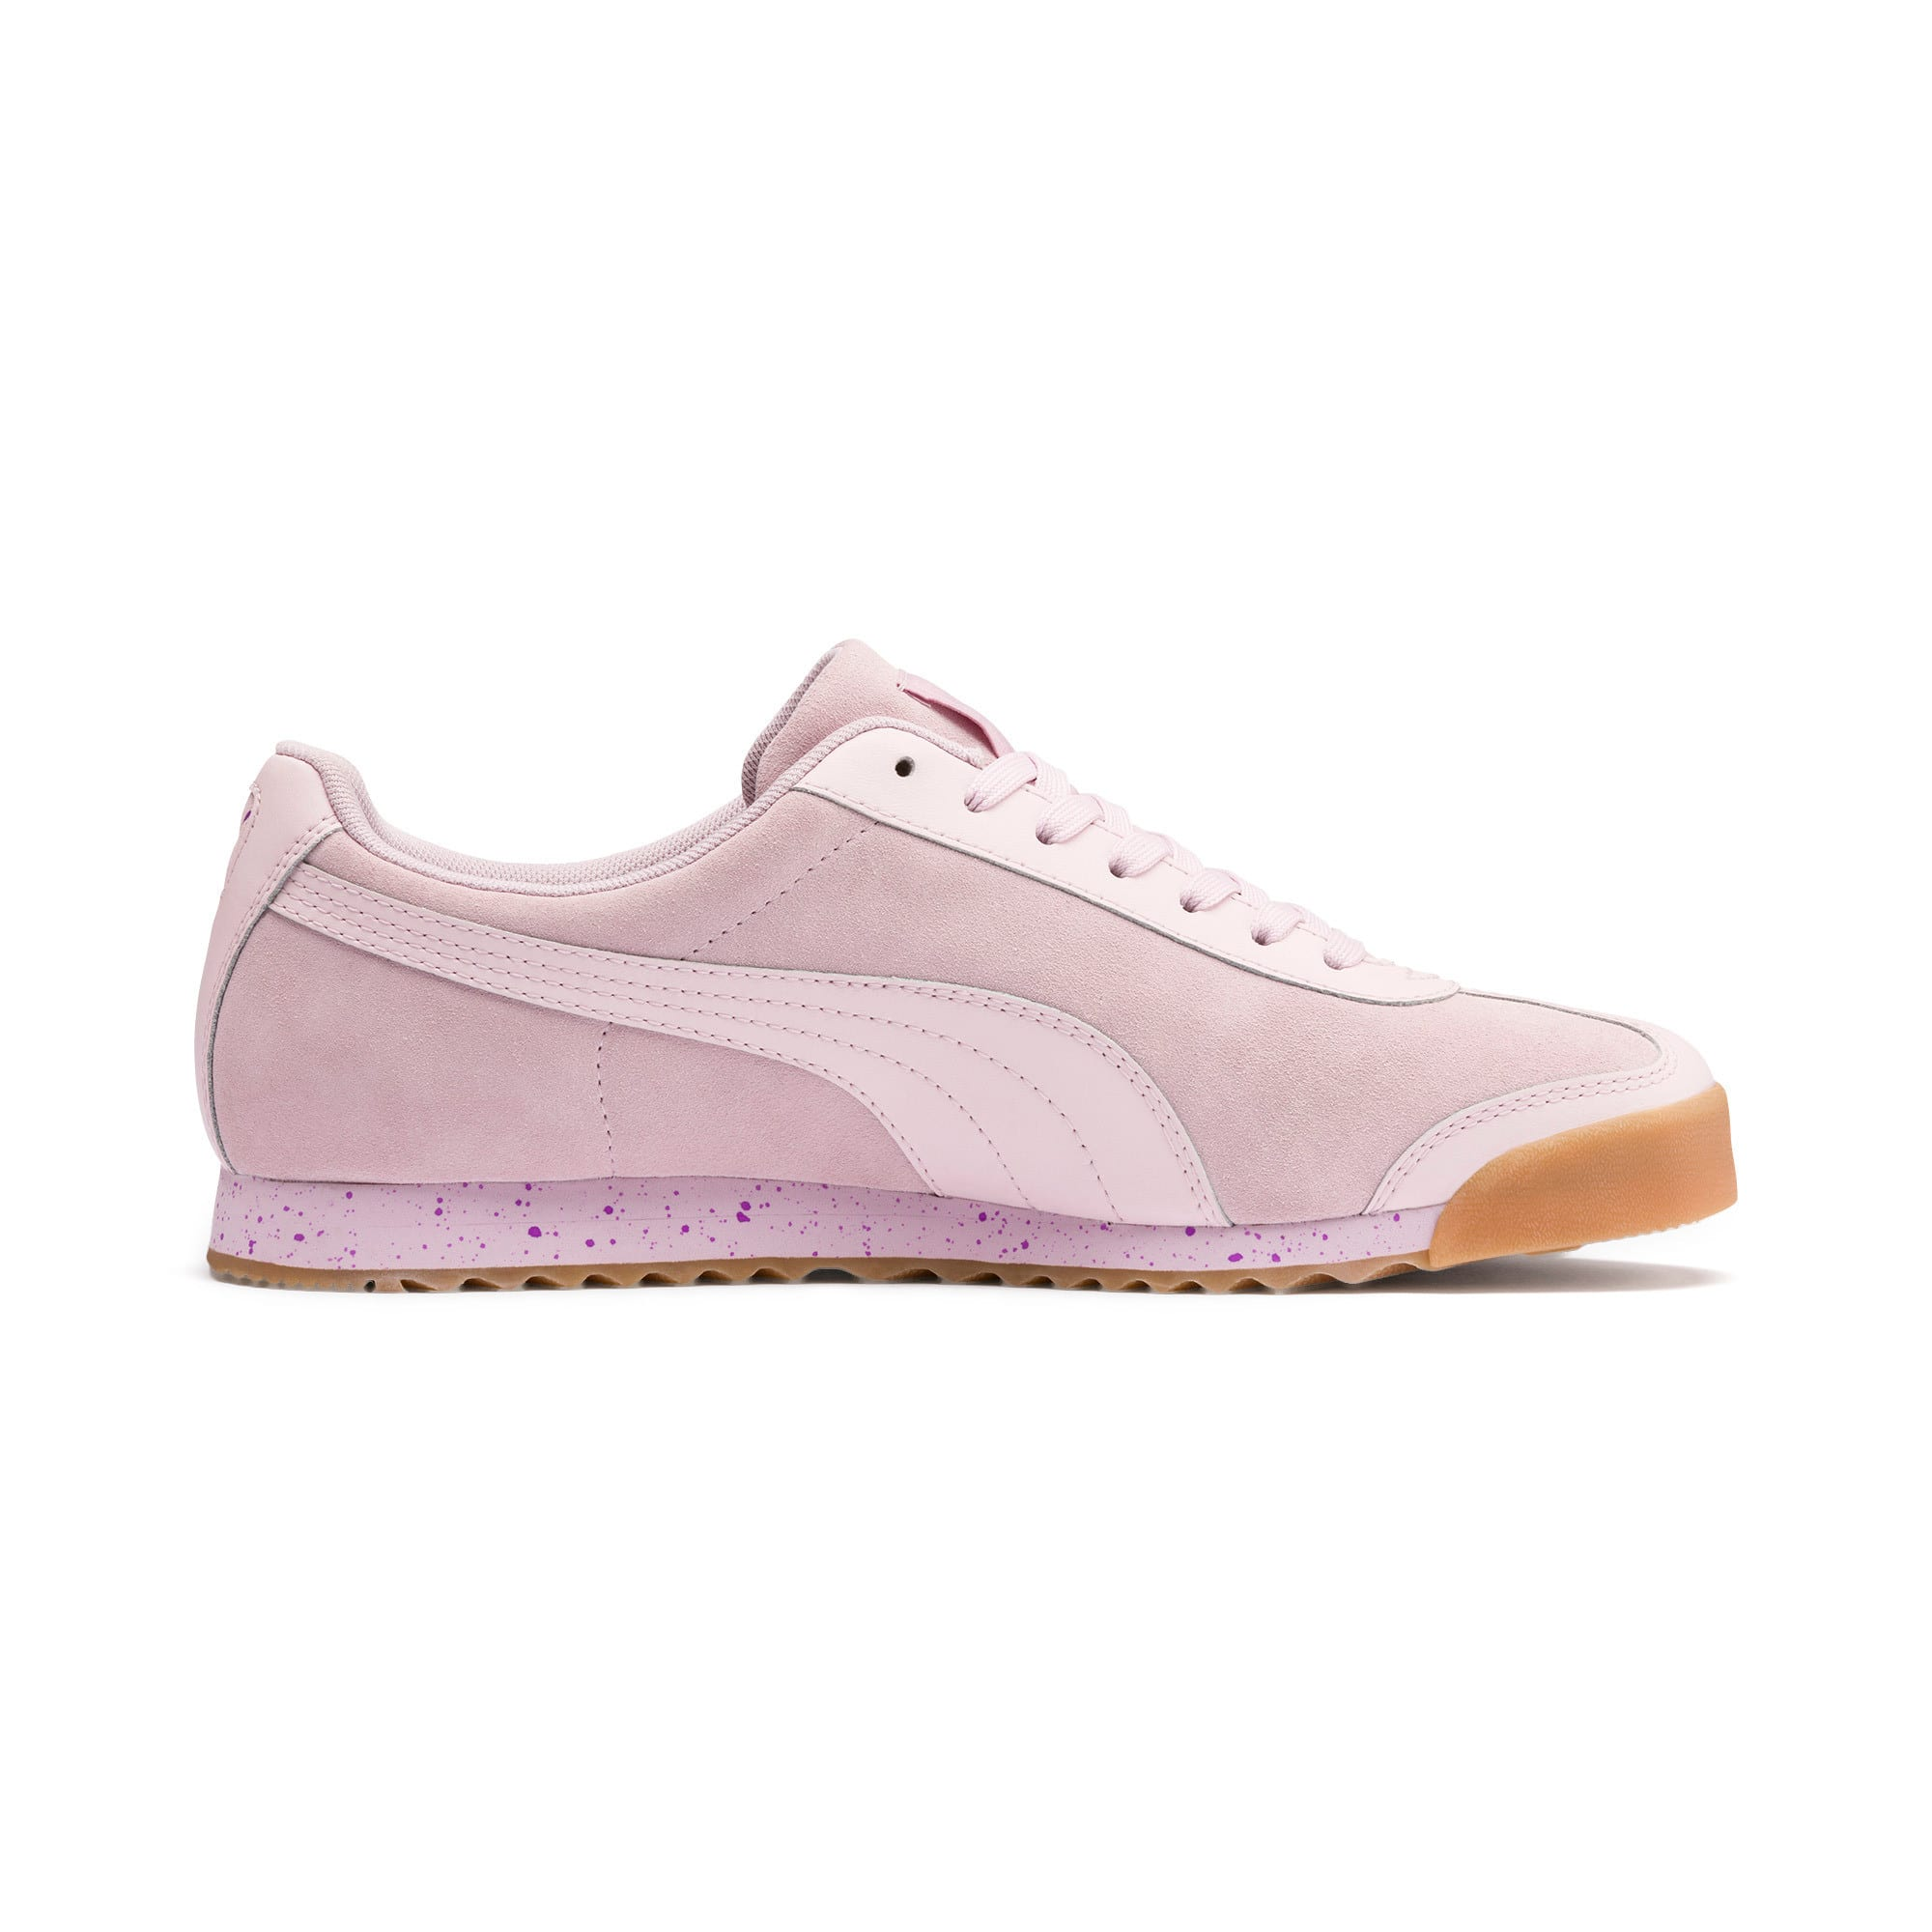 Thumbnail 5 of Roma Classic Dolce Vita Sneakers, Winsome Orchid-Lilac Snow, medium